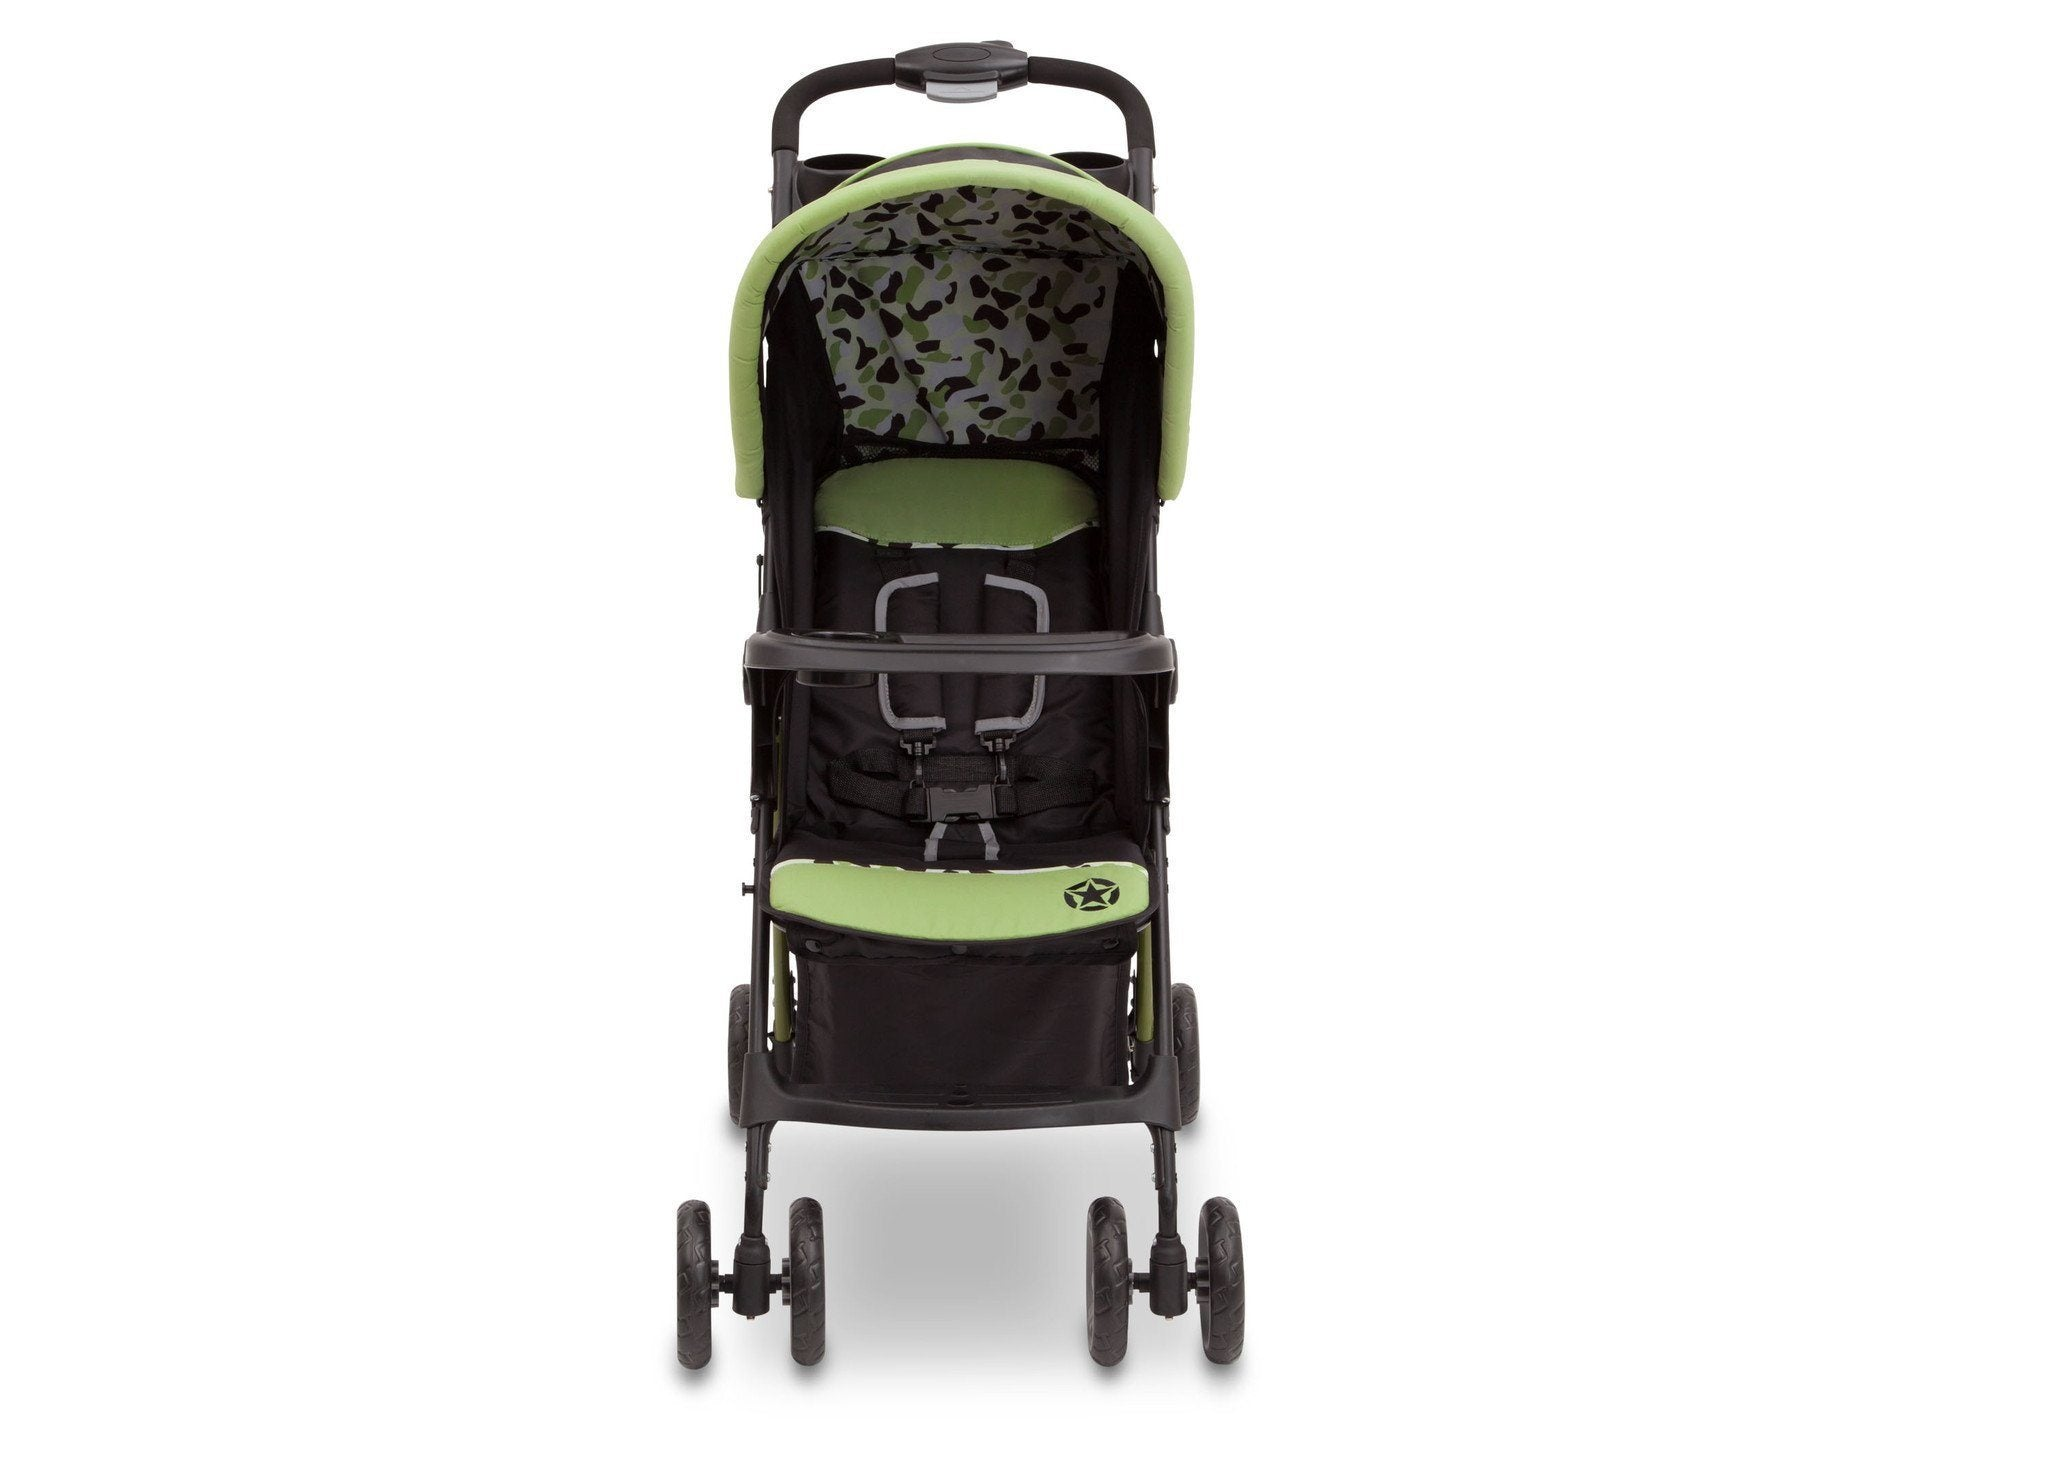 Delta Children Trekking (344) J is for Jeep Brand Metro Stroller Front View c3c